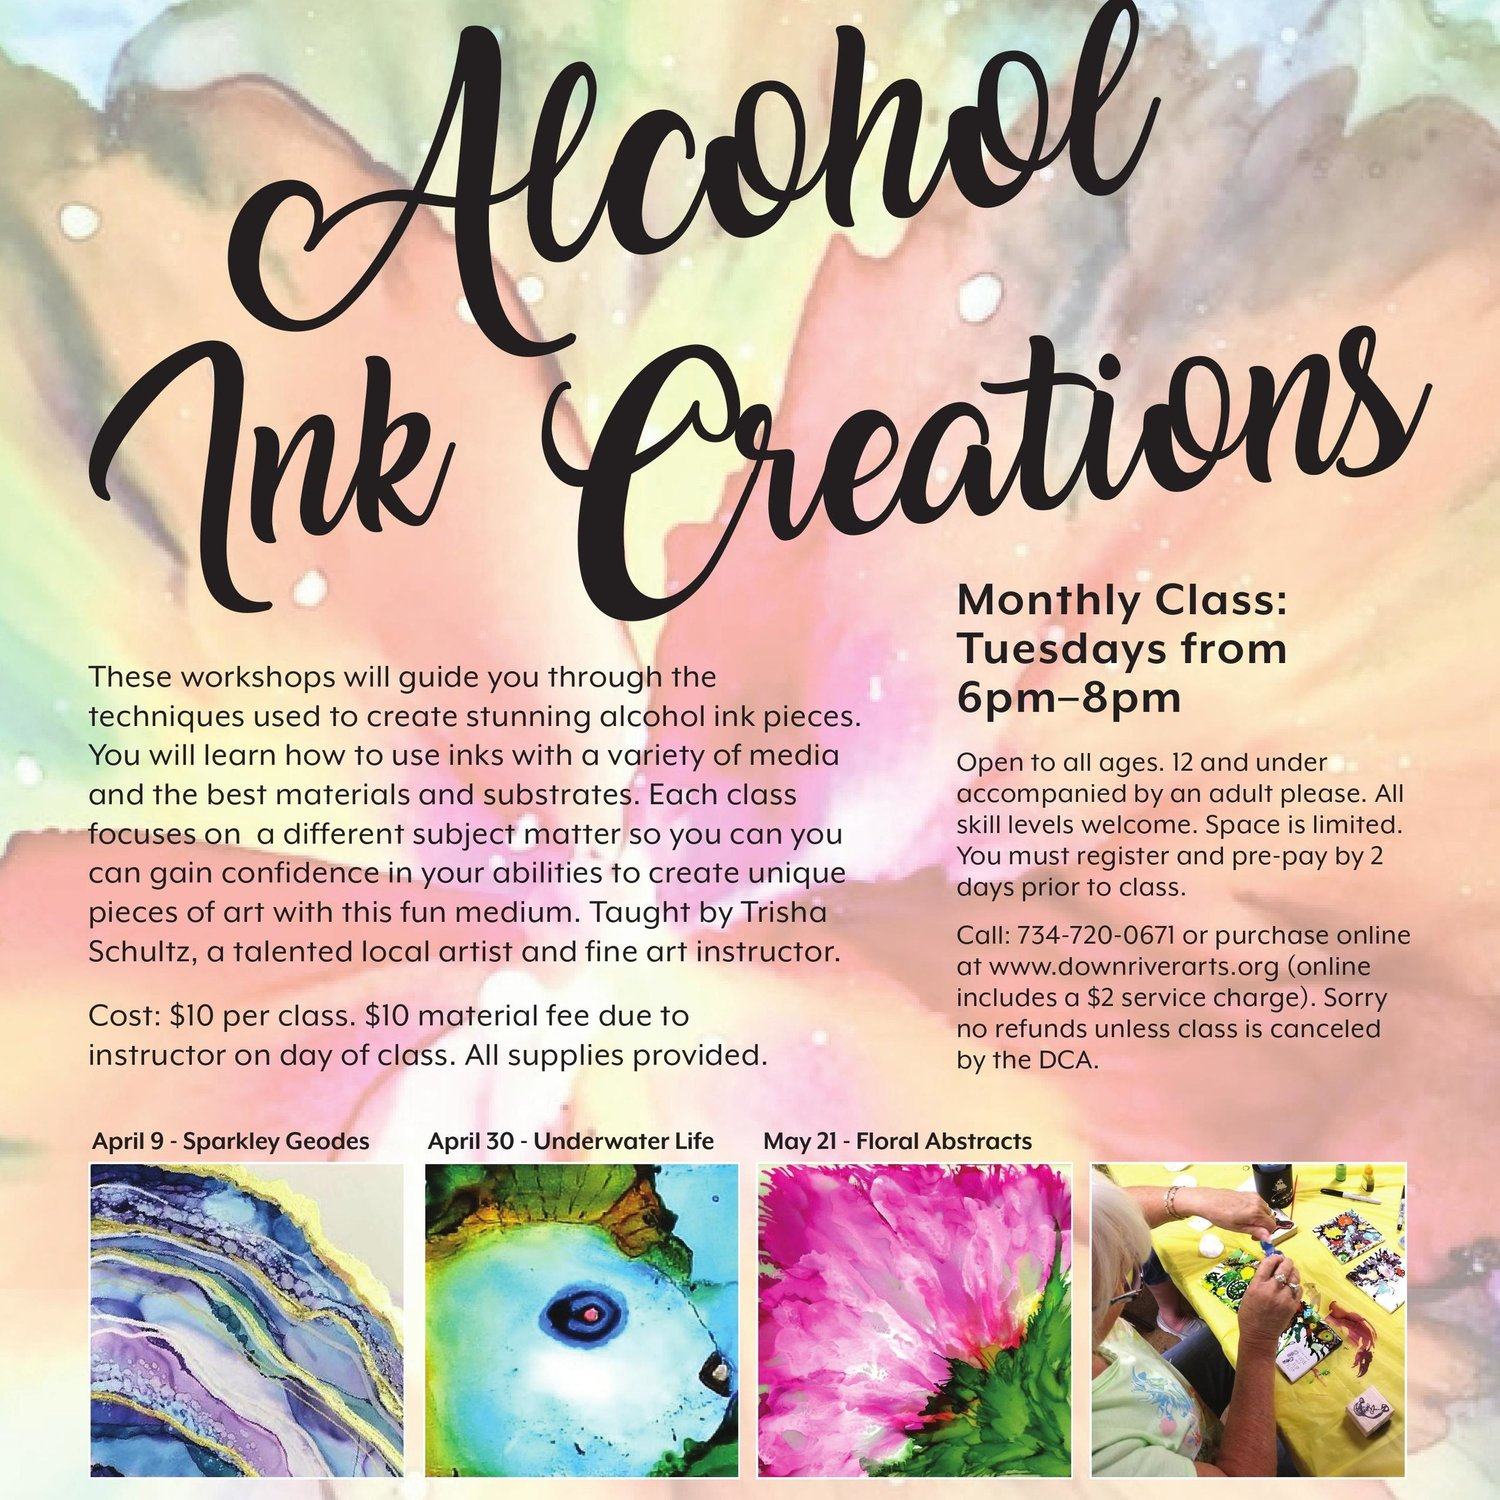 Alcohol Inks Creations — Downriver Council for the Arts